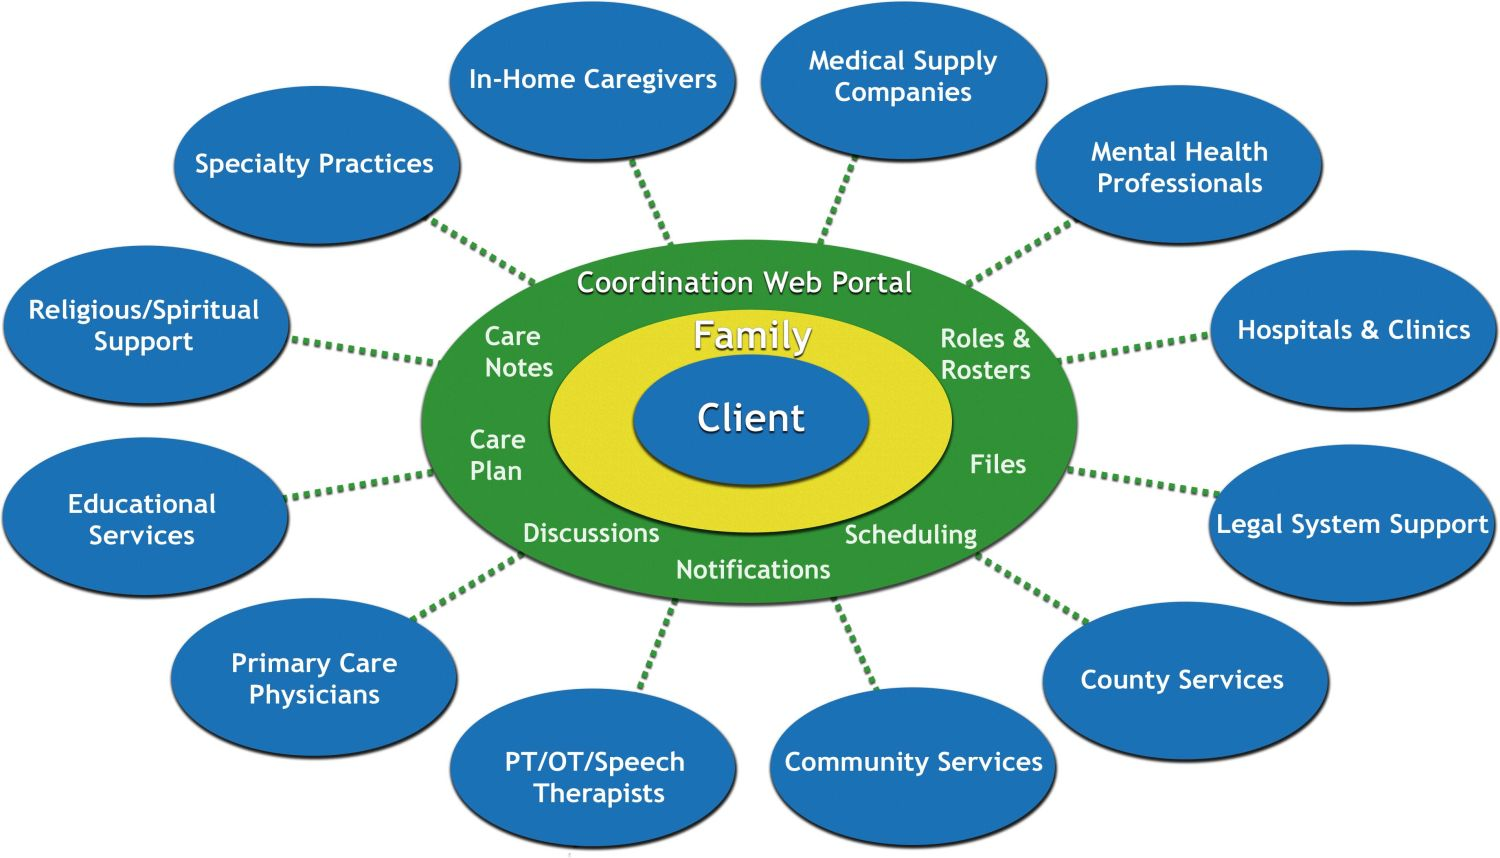 As A Nurse I Embrace the Patient and Family Centered Care Approach